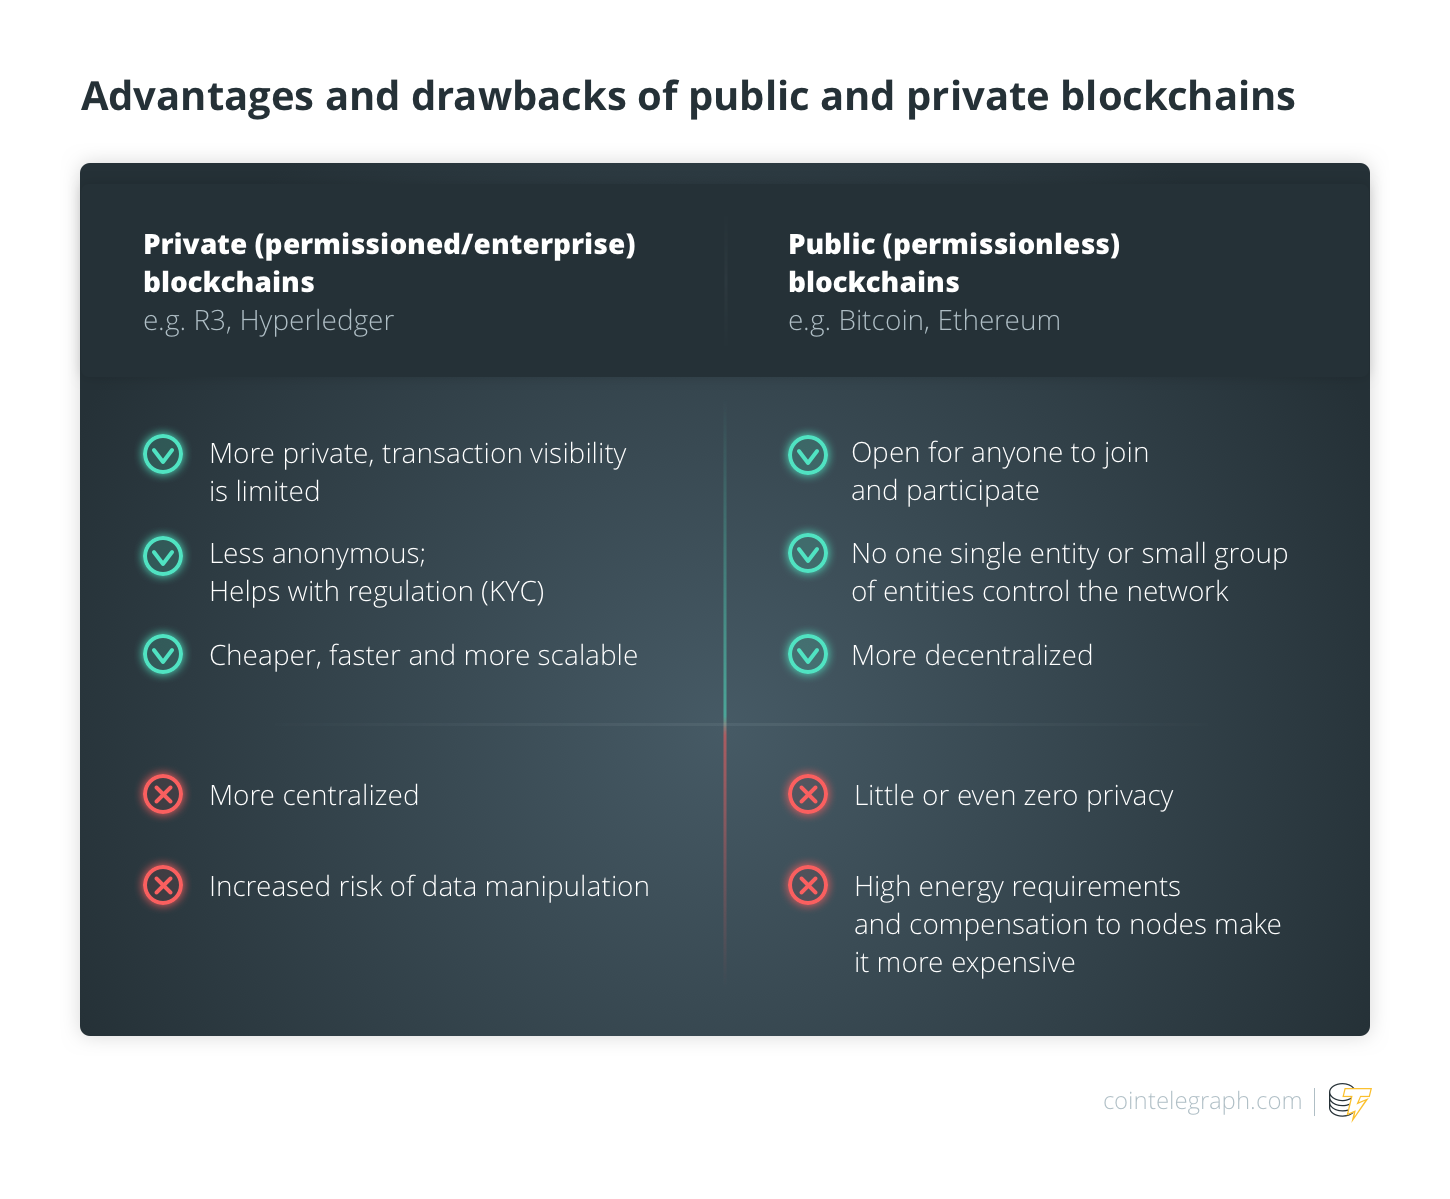 Advantages and drawbacks of public and private blockchains